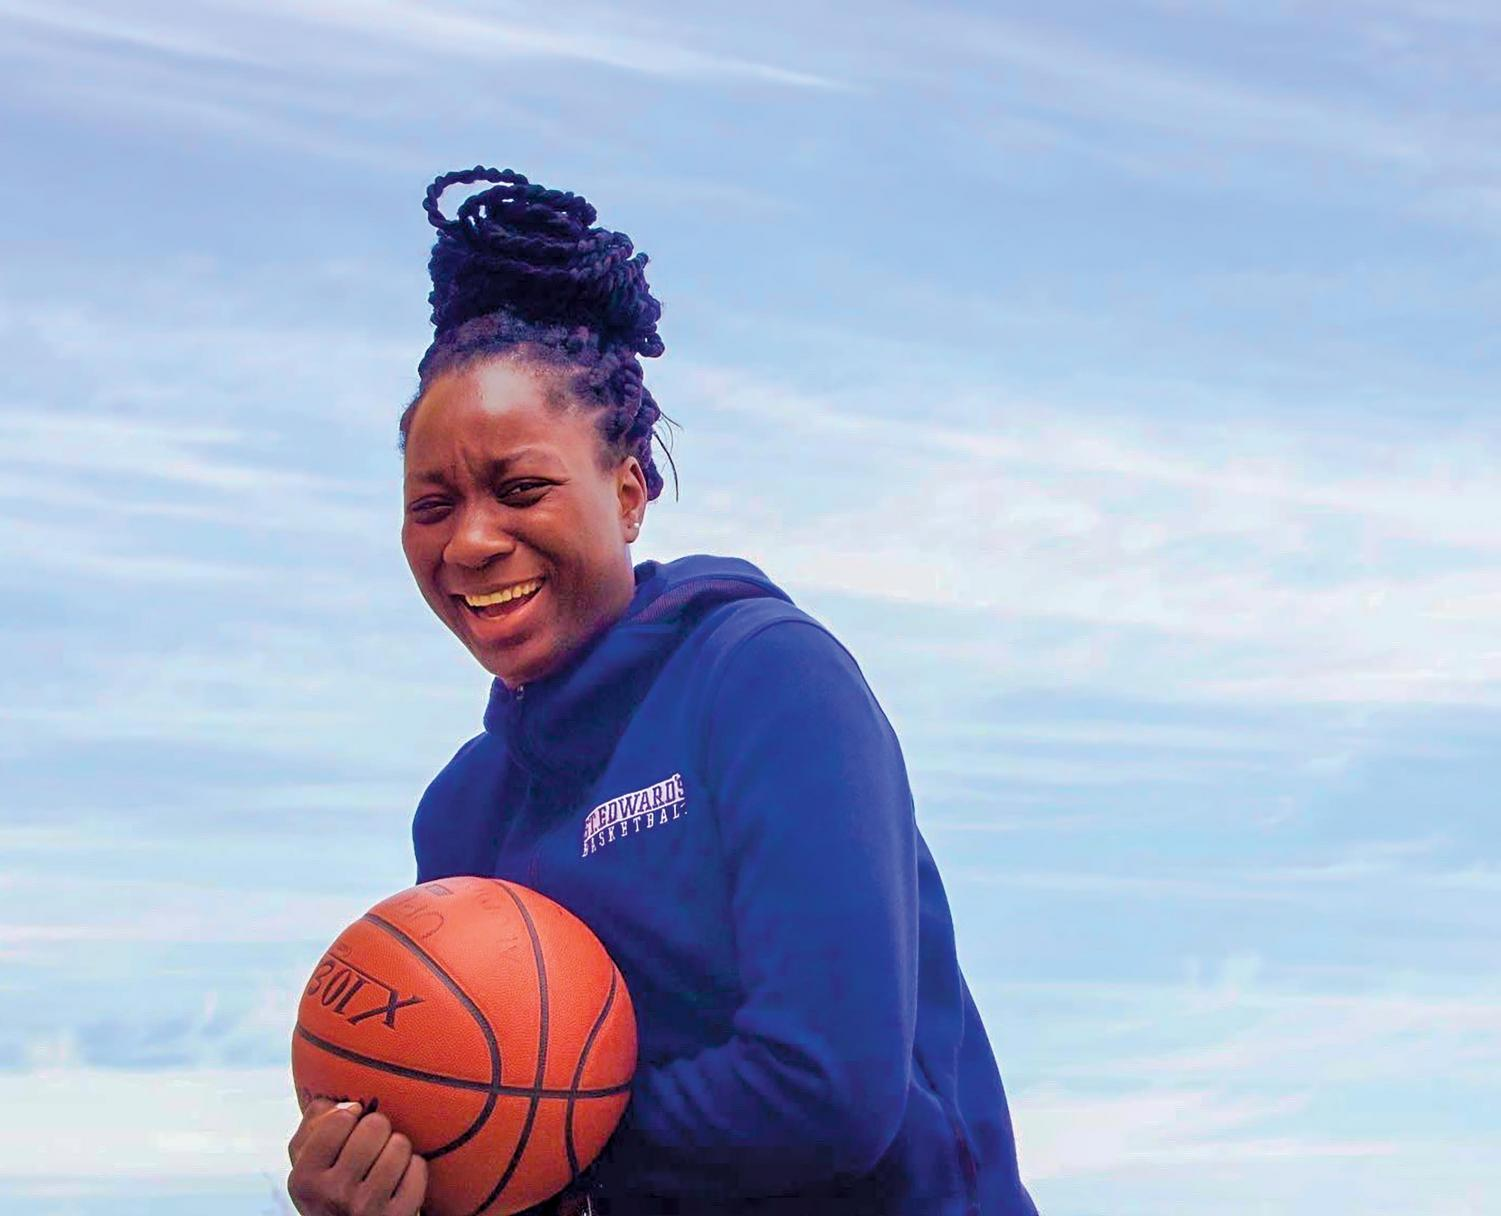 Originally from Nigeria, junior center Phydel Nwanze has spent the past few years adjusting to life in America. She chose to move to the U.S. to pursue a college degree and continue playing basketball.